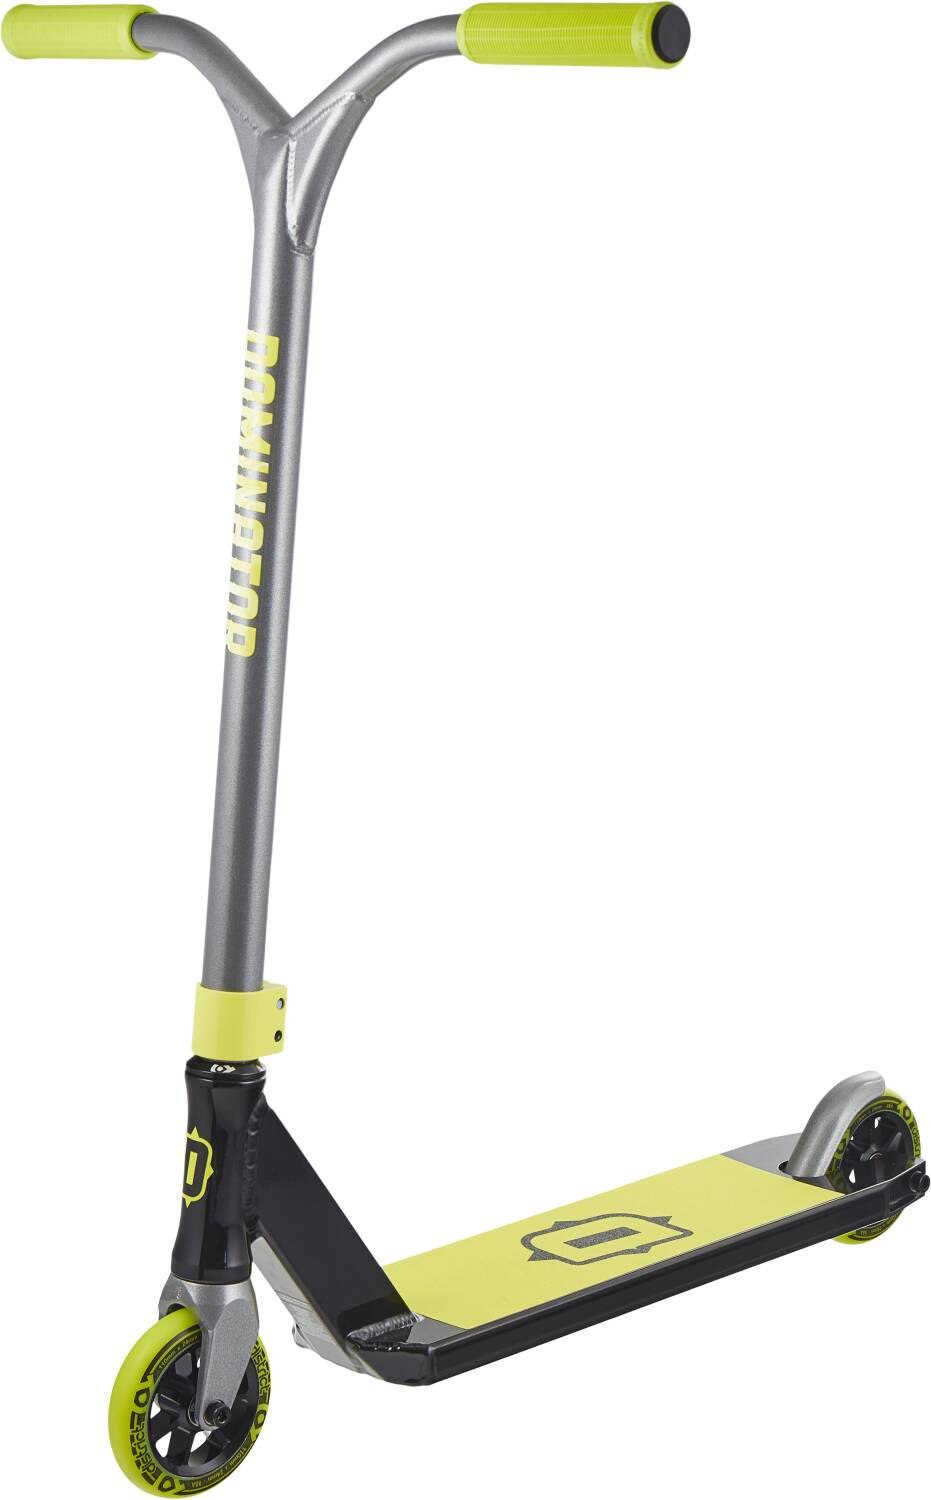 Dominator Airborne Scooter - Black / Yellow